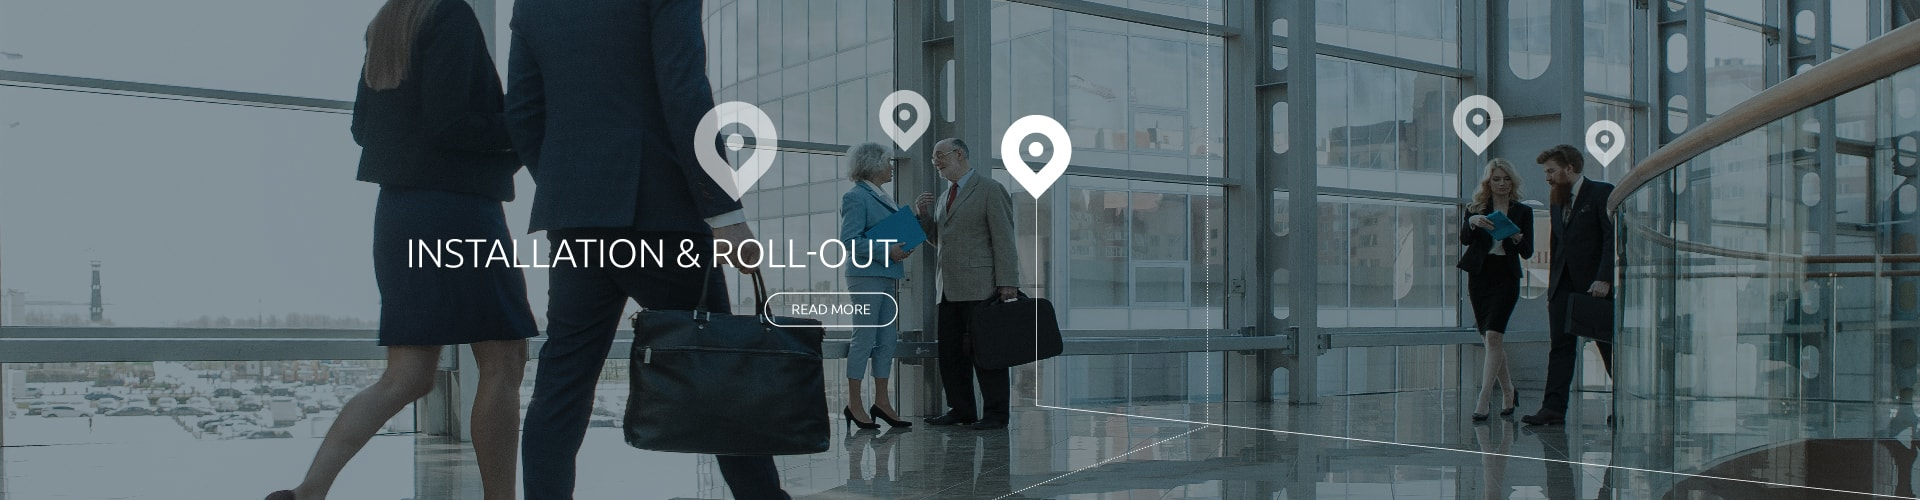 Favendo_RTLS_example_installation_rollout_expertise_campus